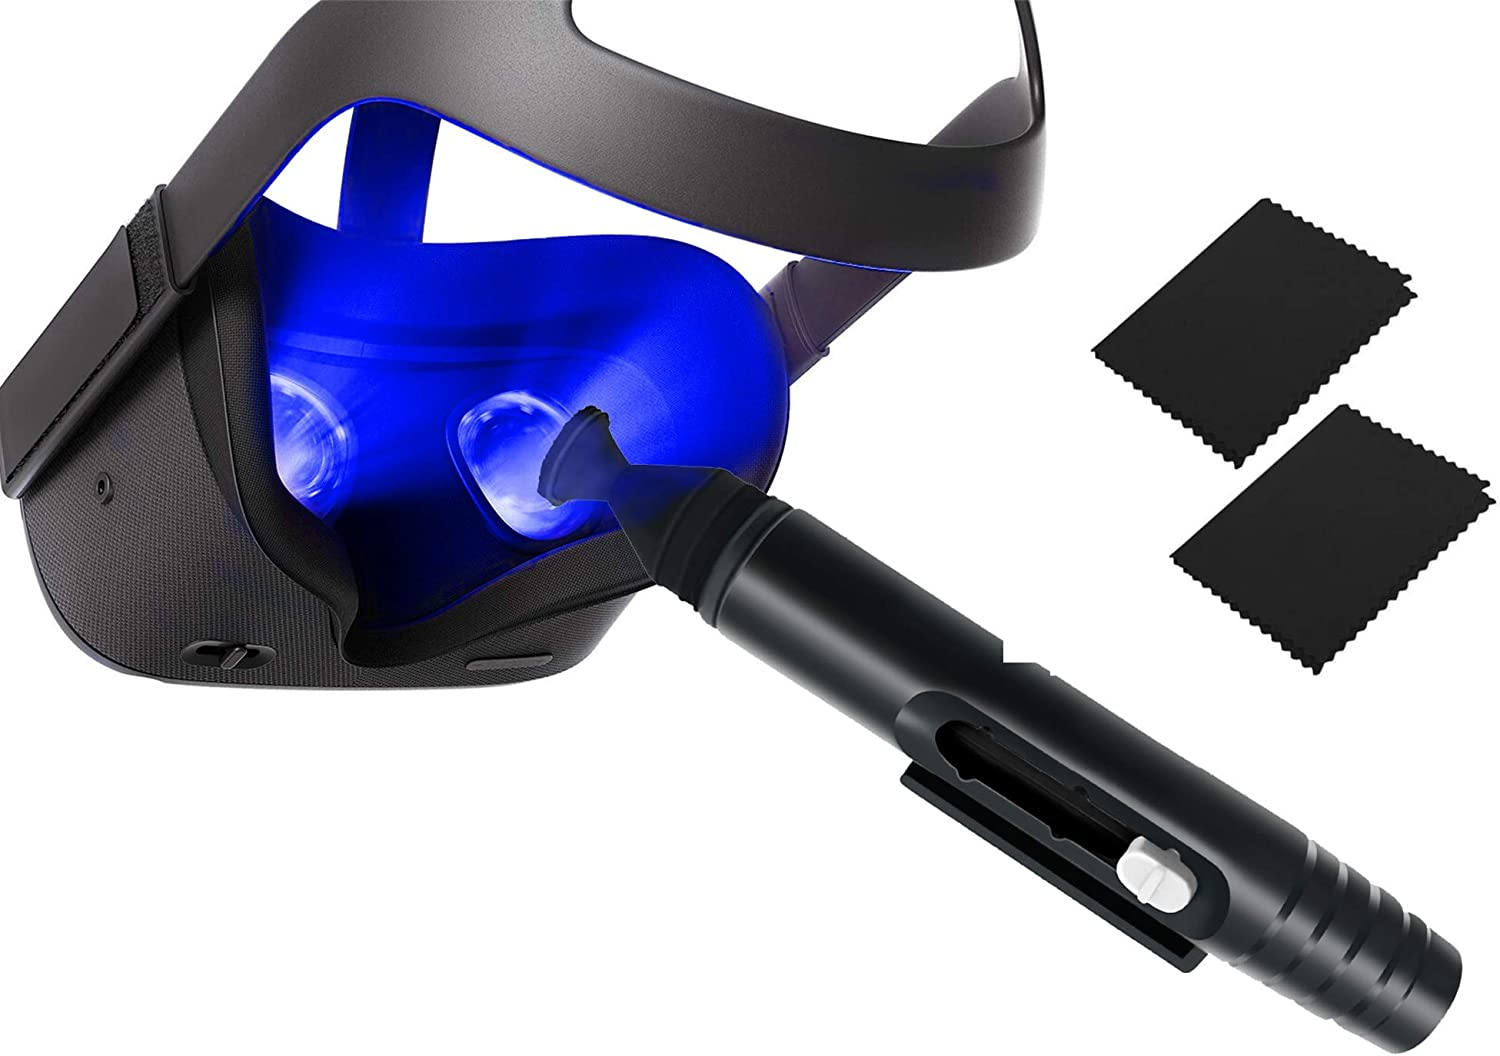 AR/VRLens Cleaning Pen + 2 MicrofiberCloths for Oculus Quest 2/Quest/HTC Vive/Cosmos/Valve Index /PS4 VR Headset/Rift S, Drone, Microsoft HoloLens, Cameras andMostVirtual RealityAccessories